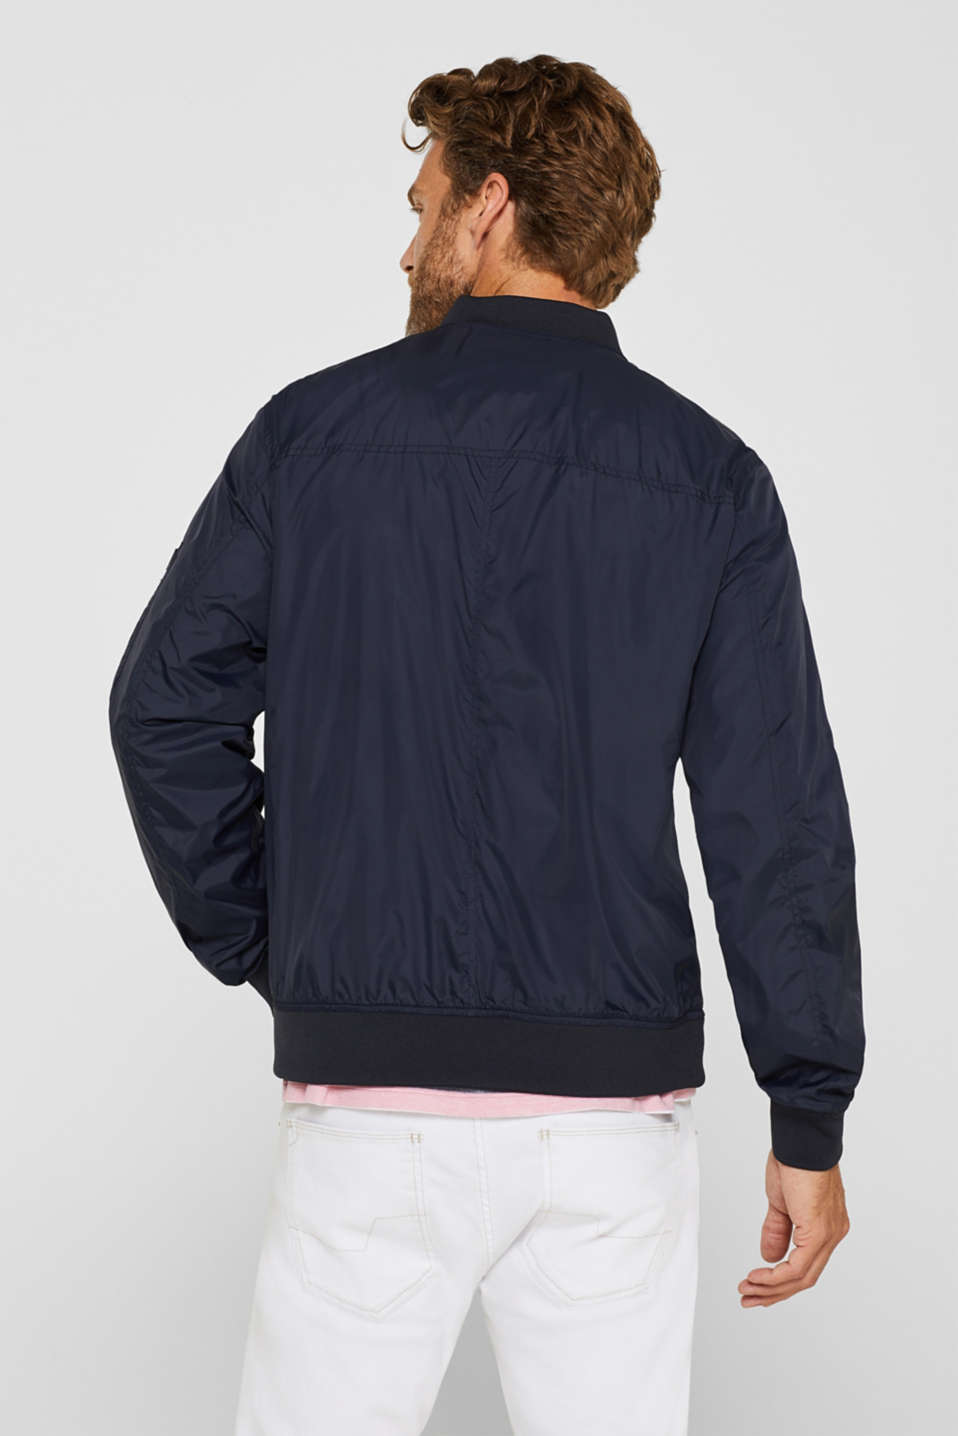 Jackets outdoor woven, DARK BLUE, detail image number 3